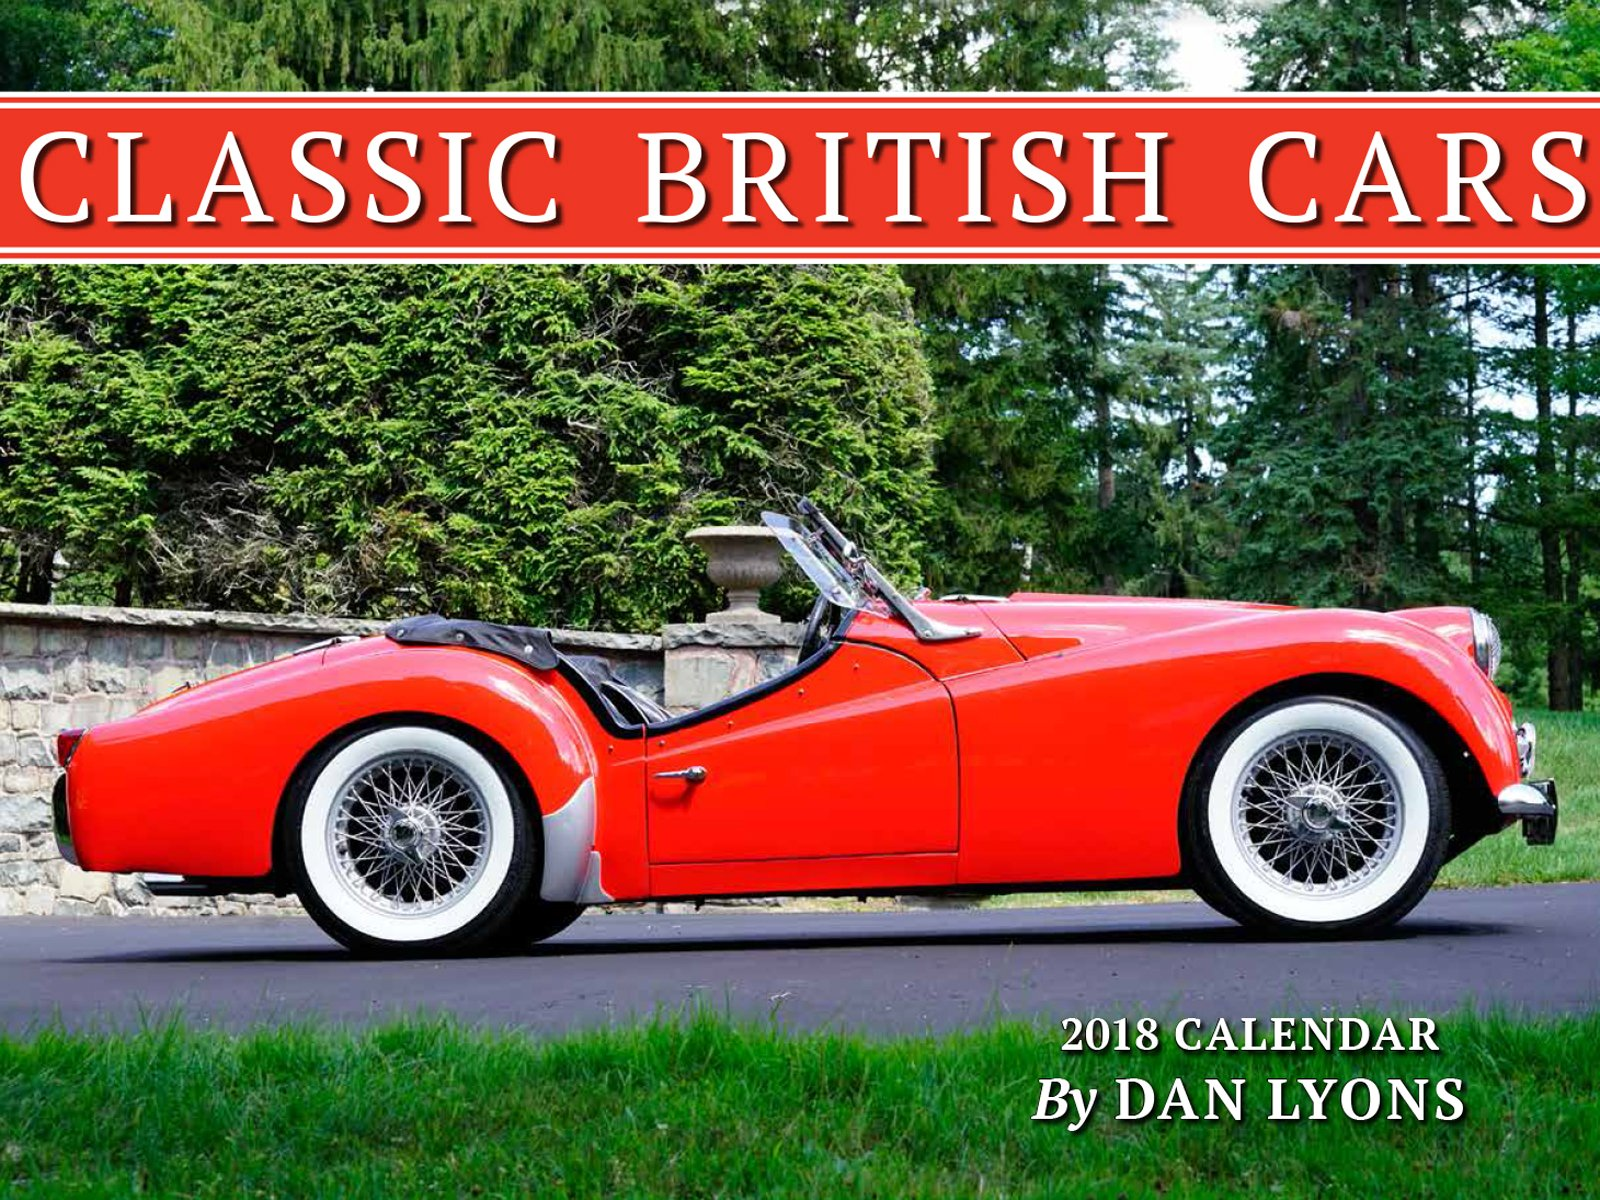 Classic British Cars Calendar Dan Lyons - British cars